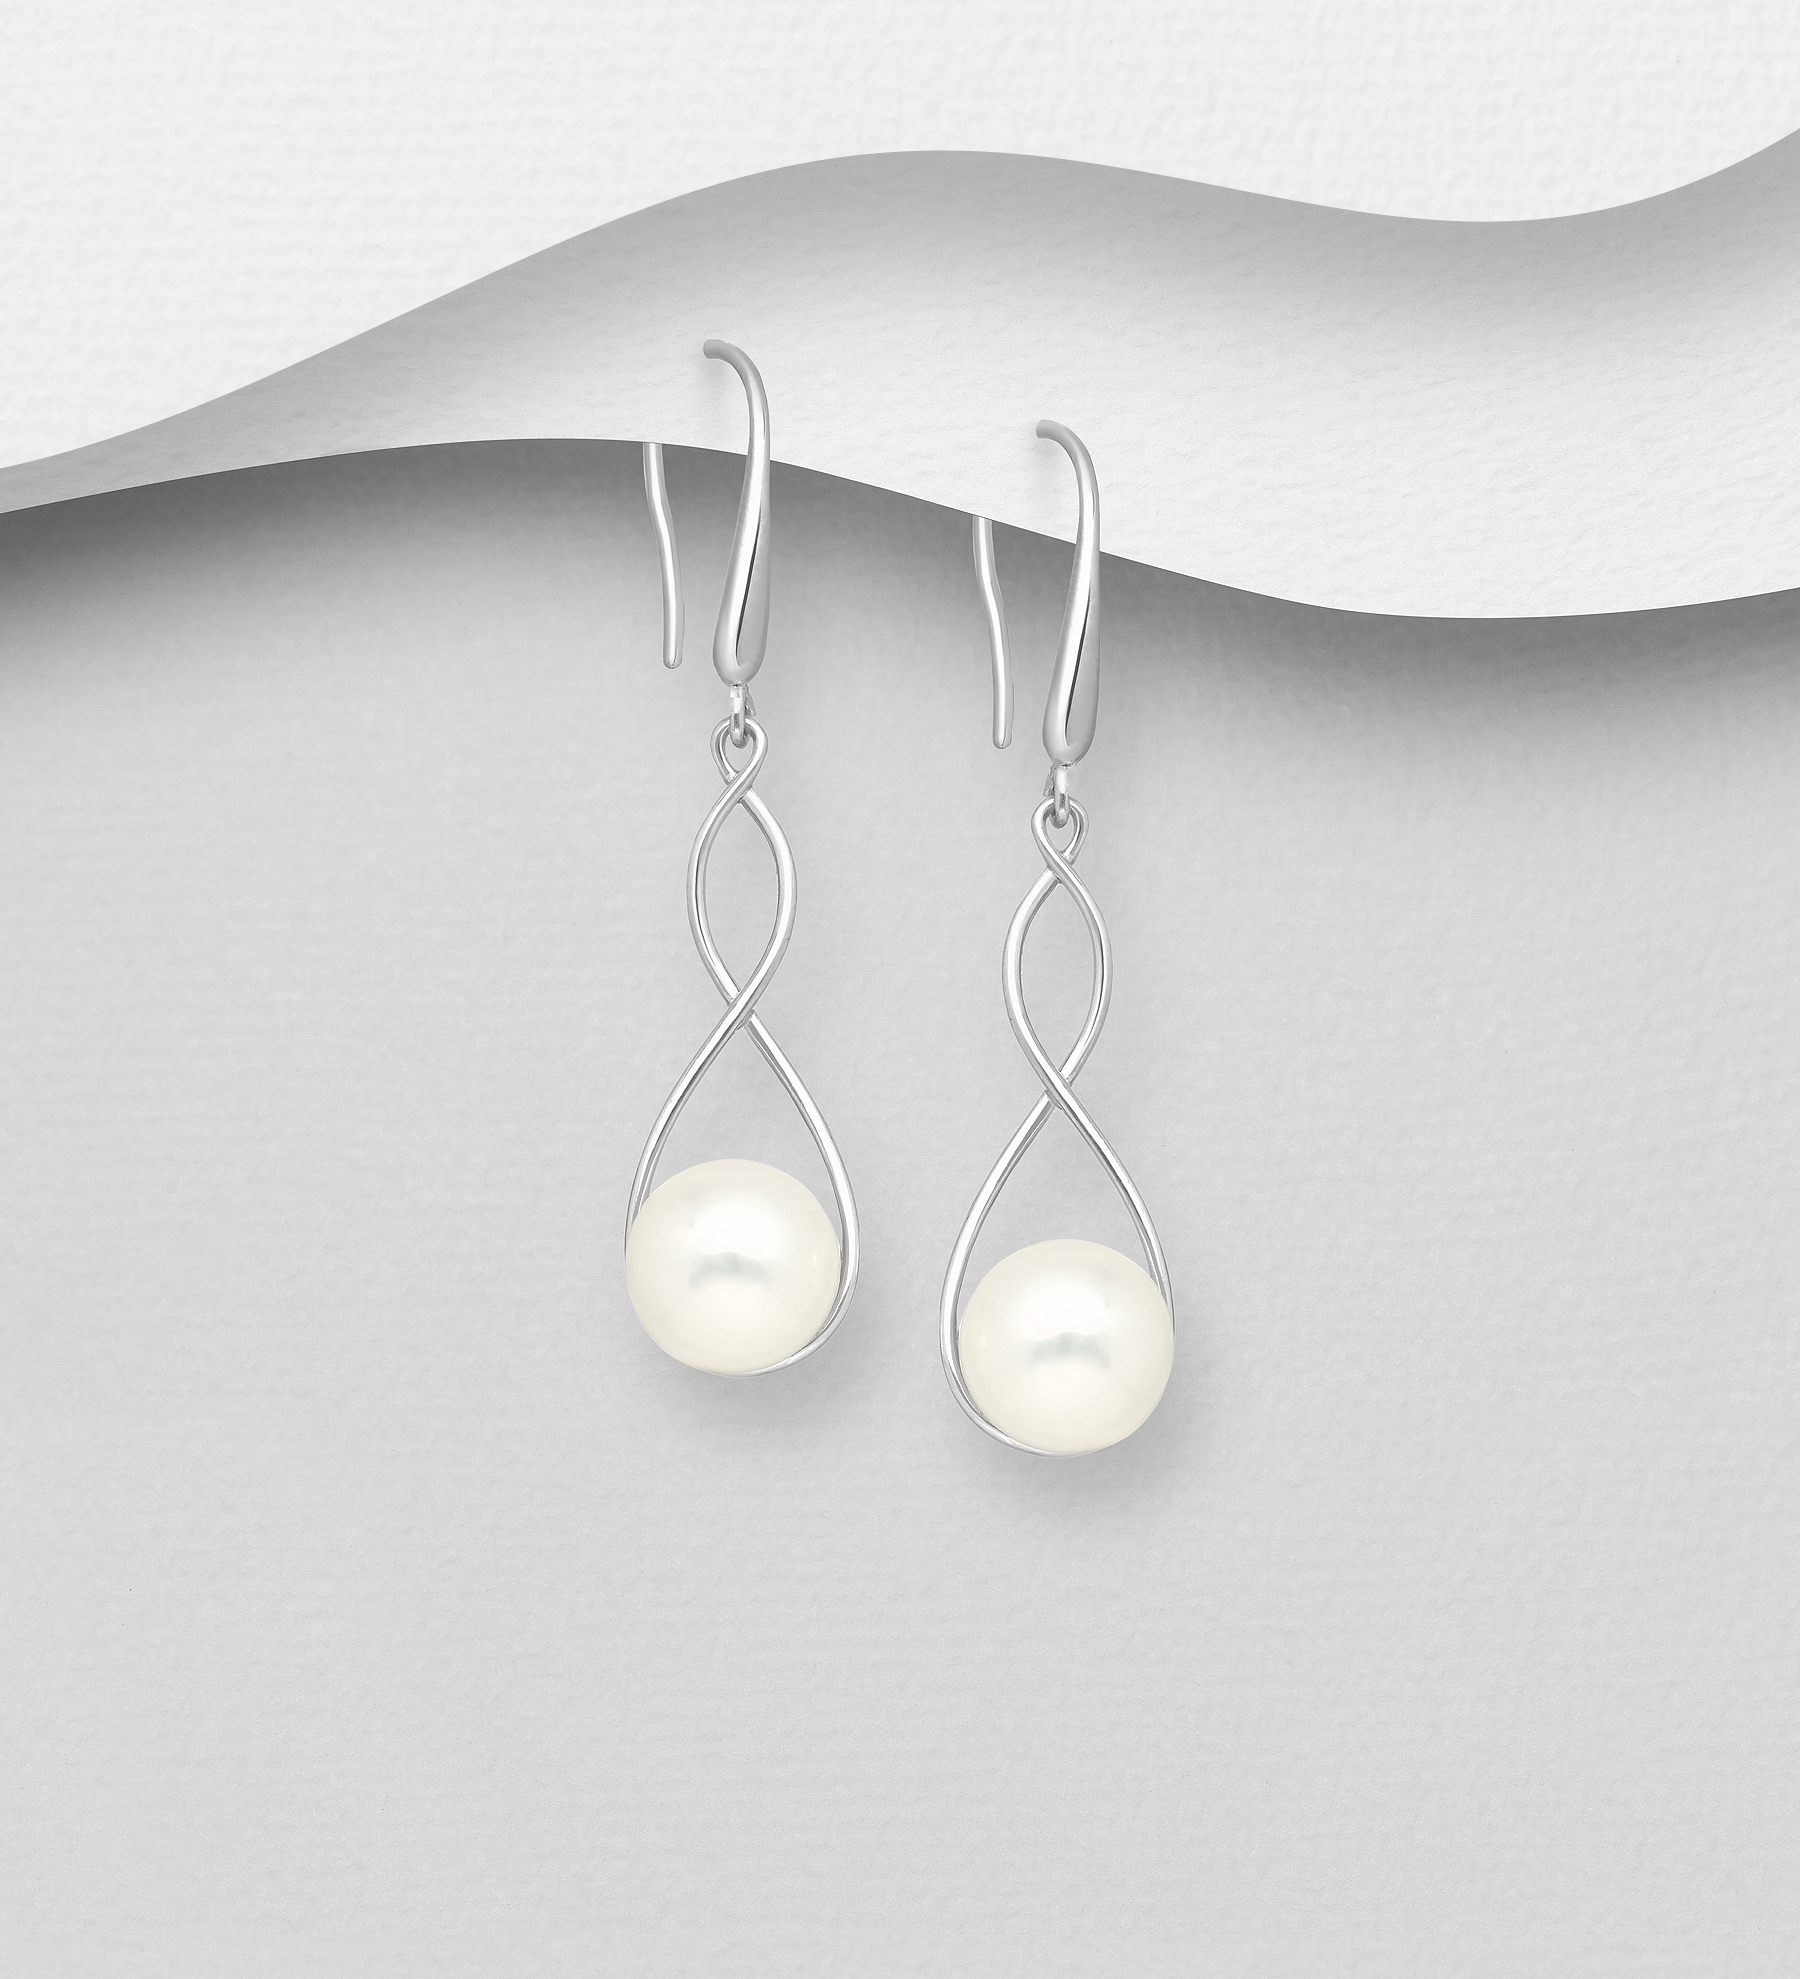 382-5436 - 925 Sterling Silver Infinity Hook Earrings Decorated with Freshwater Pearls